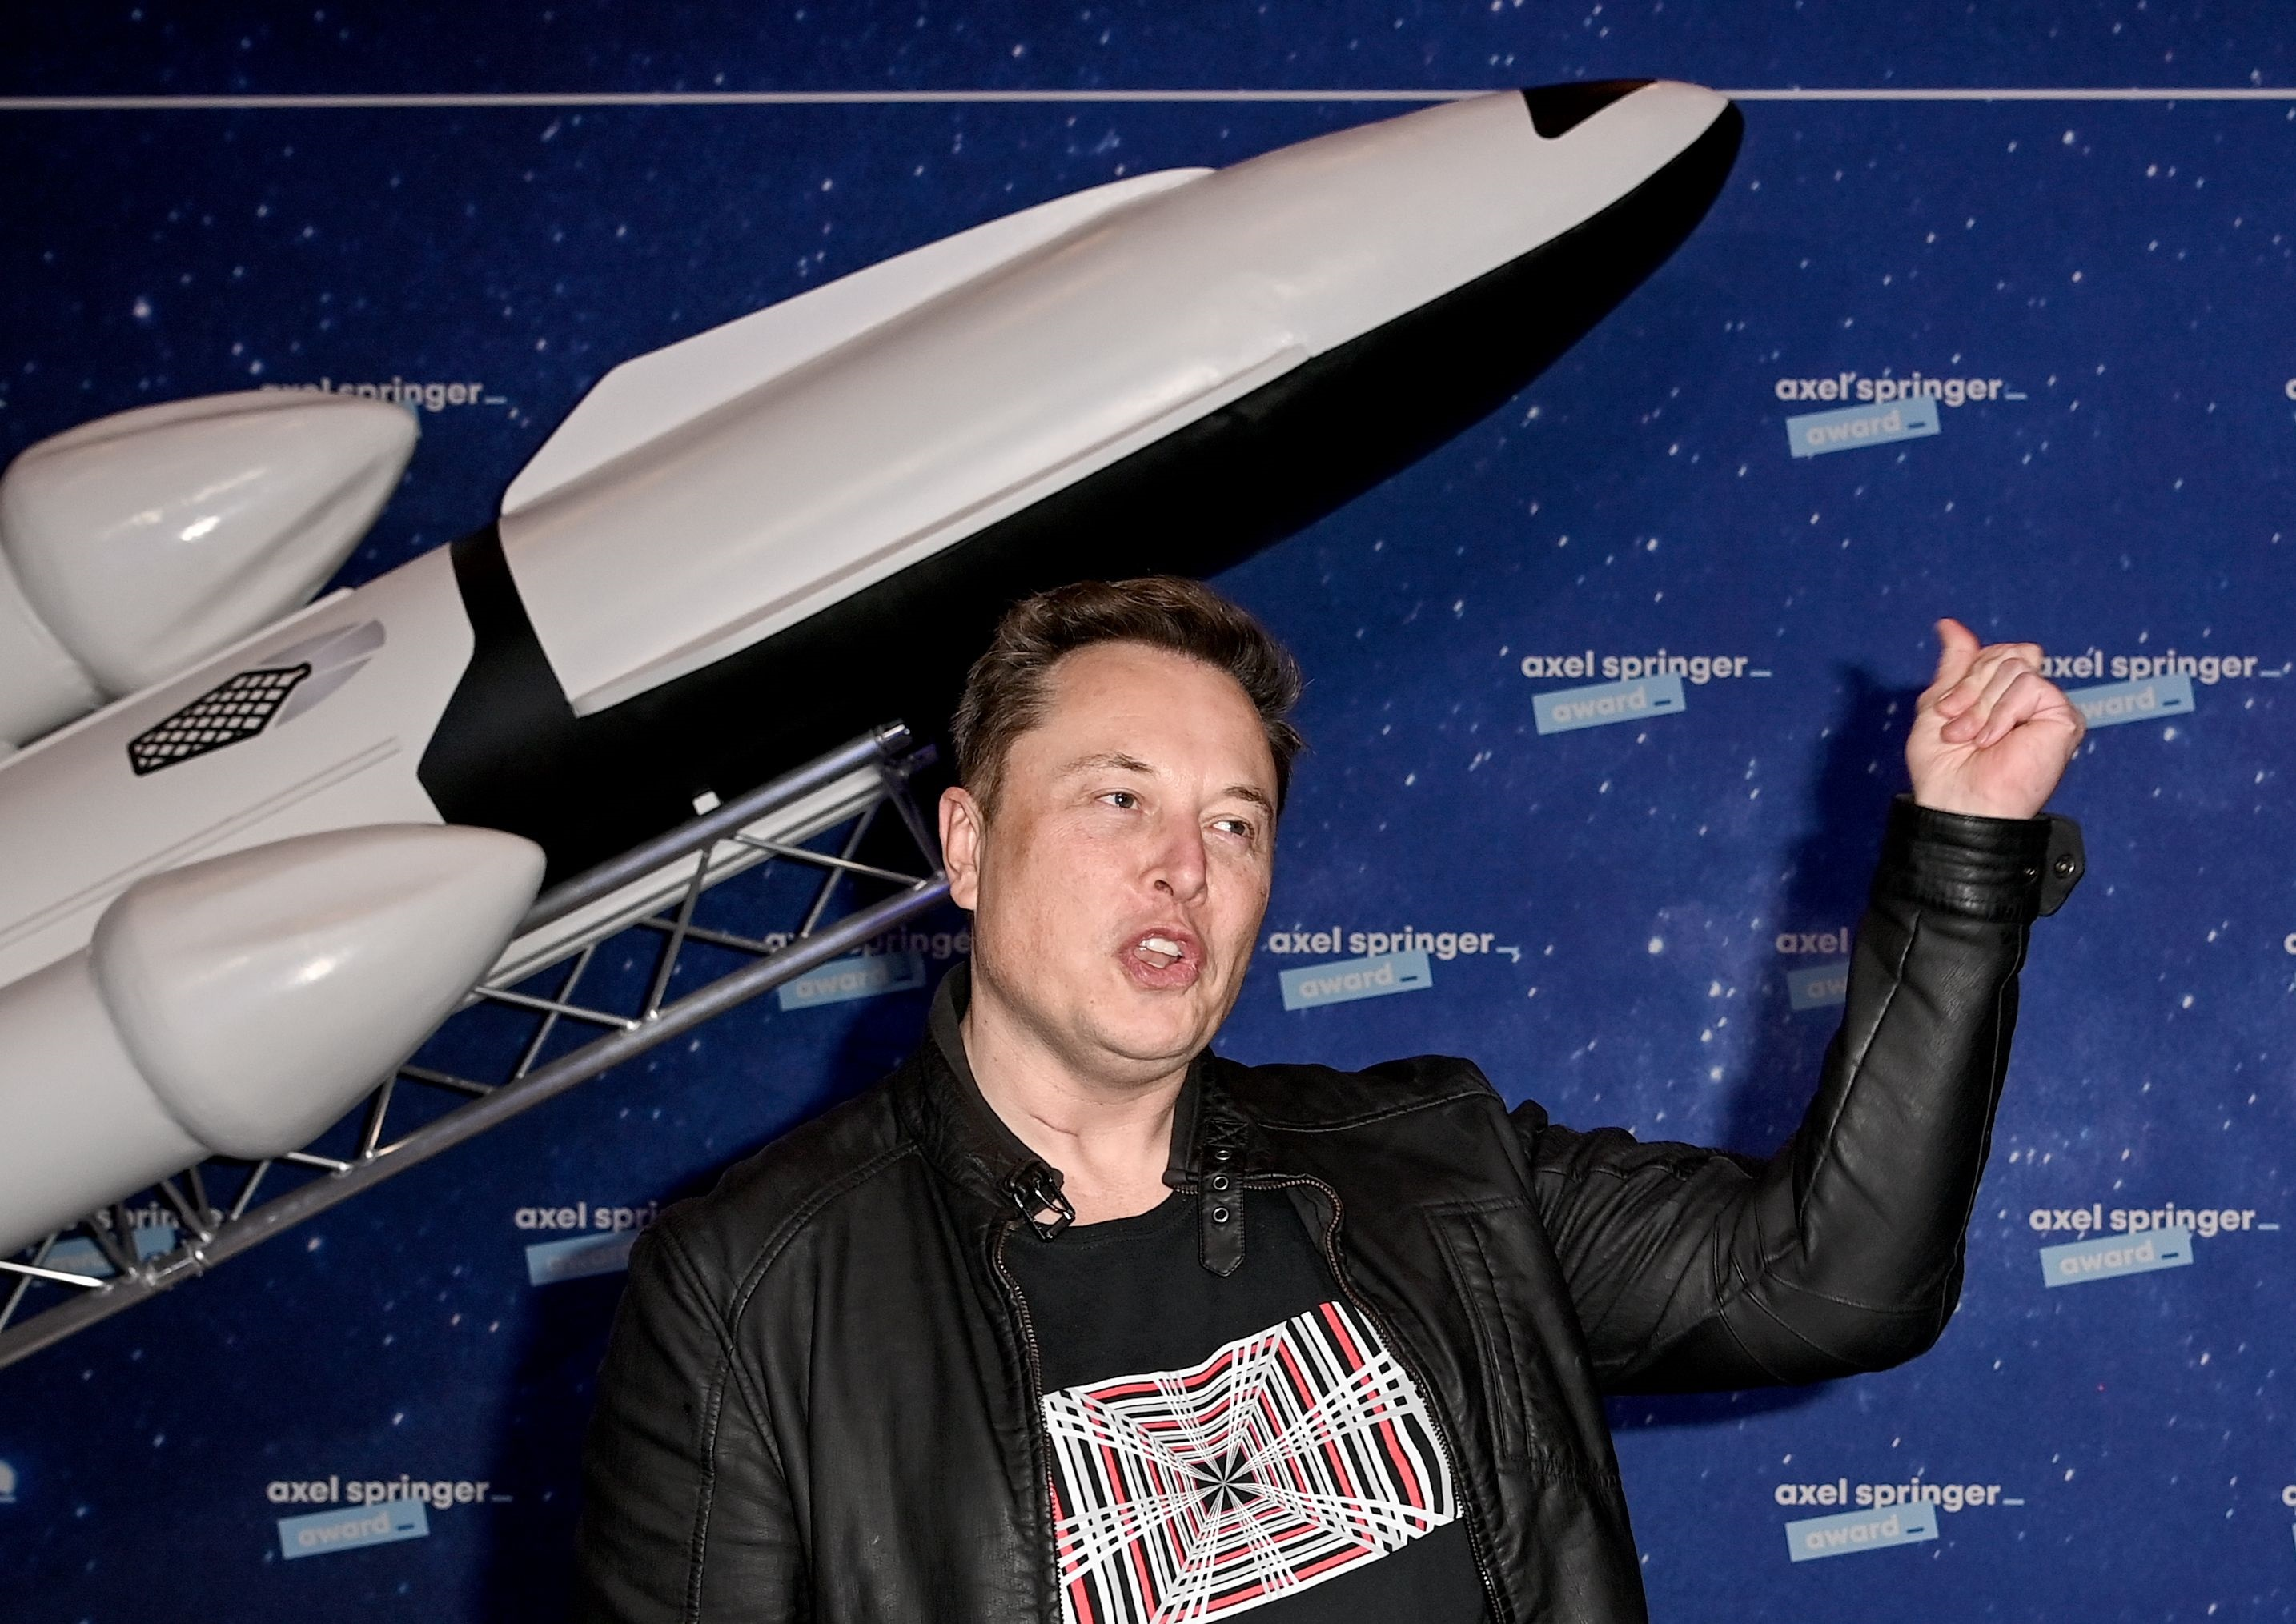 SpaceX founder and CEO Elon Musk